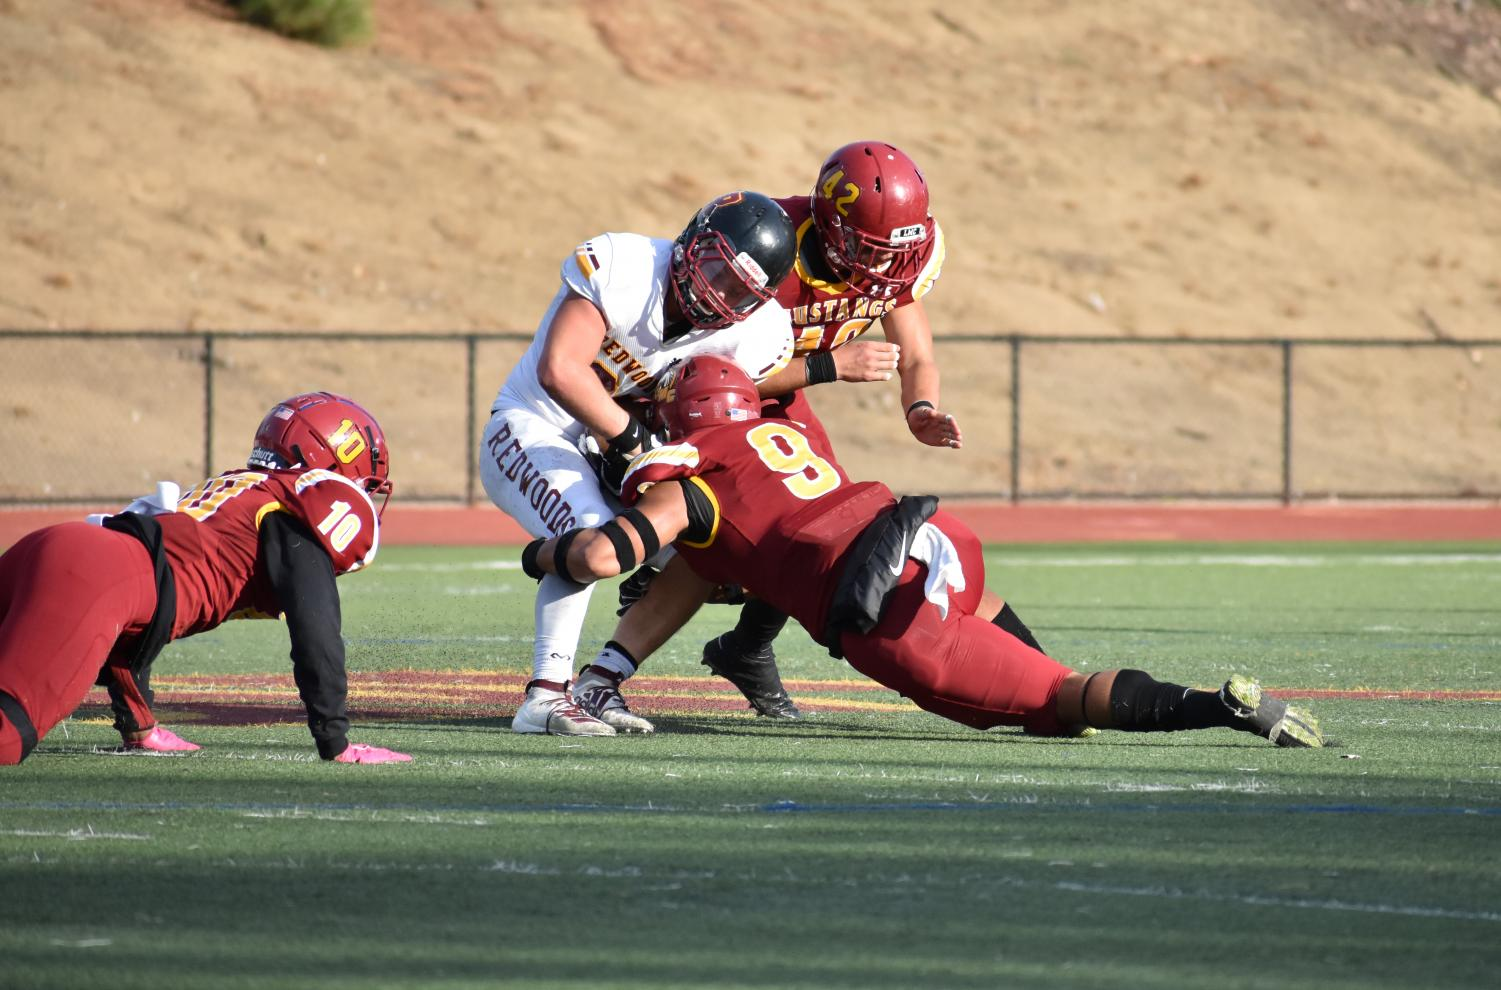 Line backer Heamasi Latu, No. 9, makes a tackle on a player from College of the Redwoods.